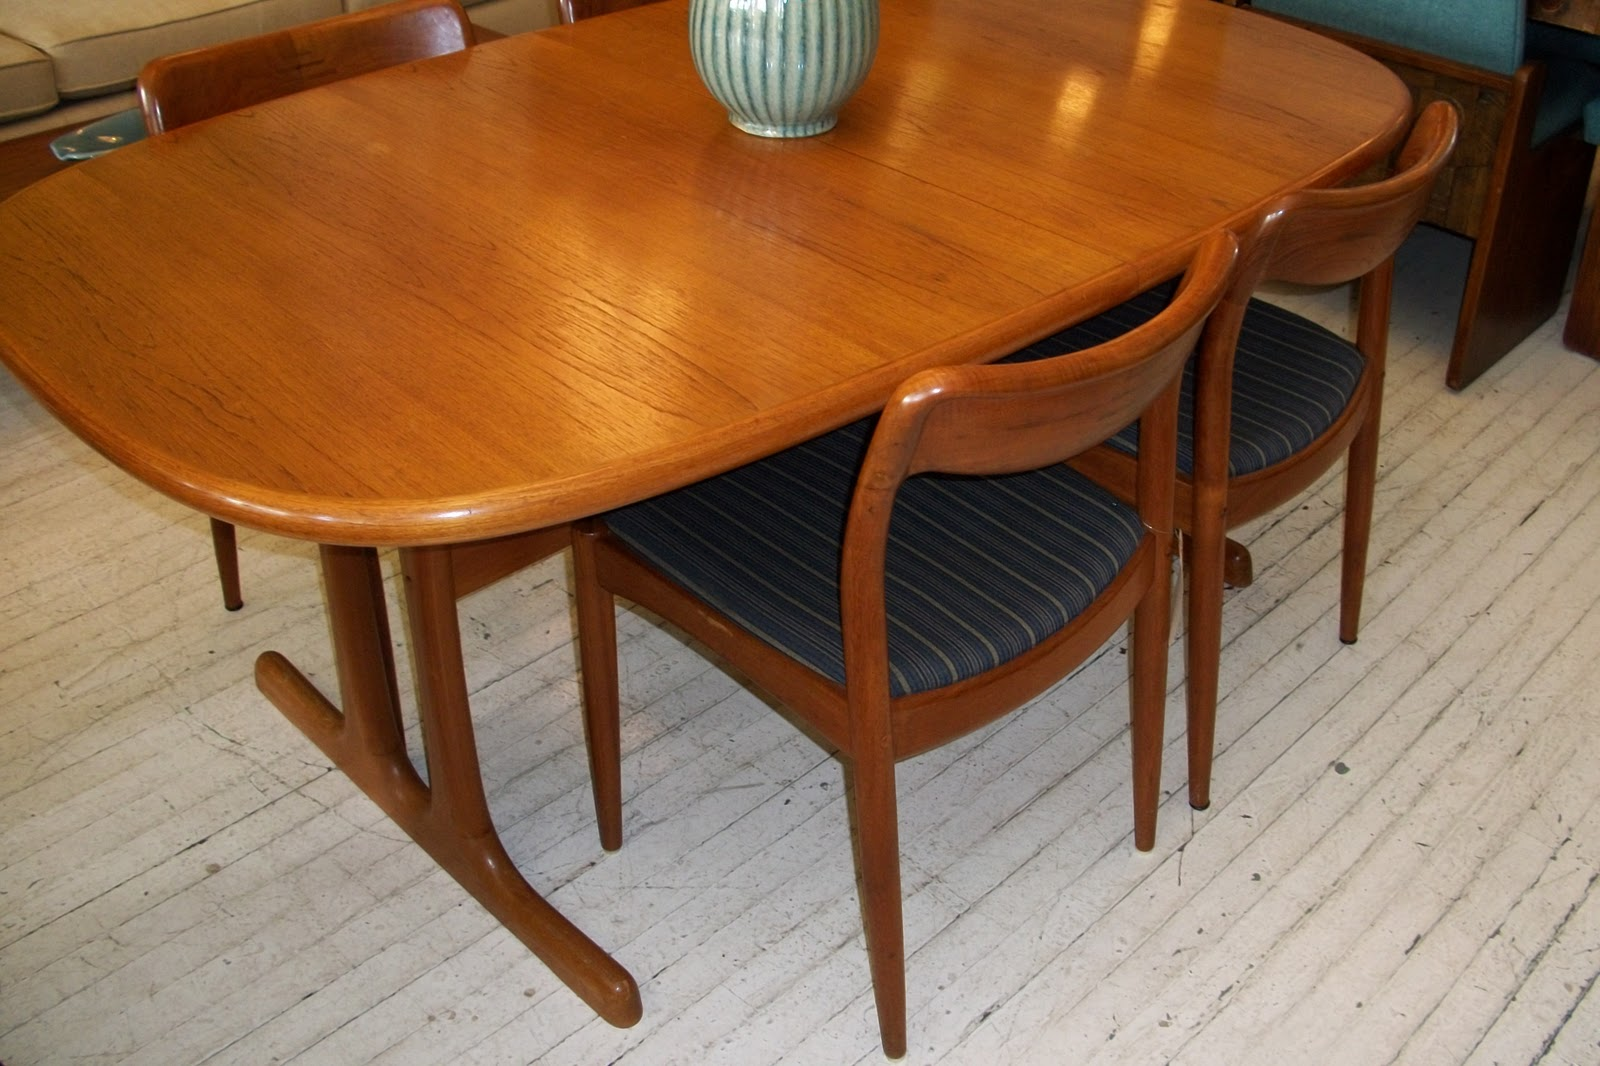 D Scan SOLID Teak Dining Room Table U0026 4 Chairs